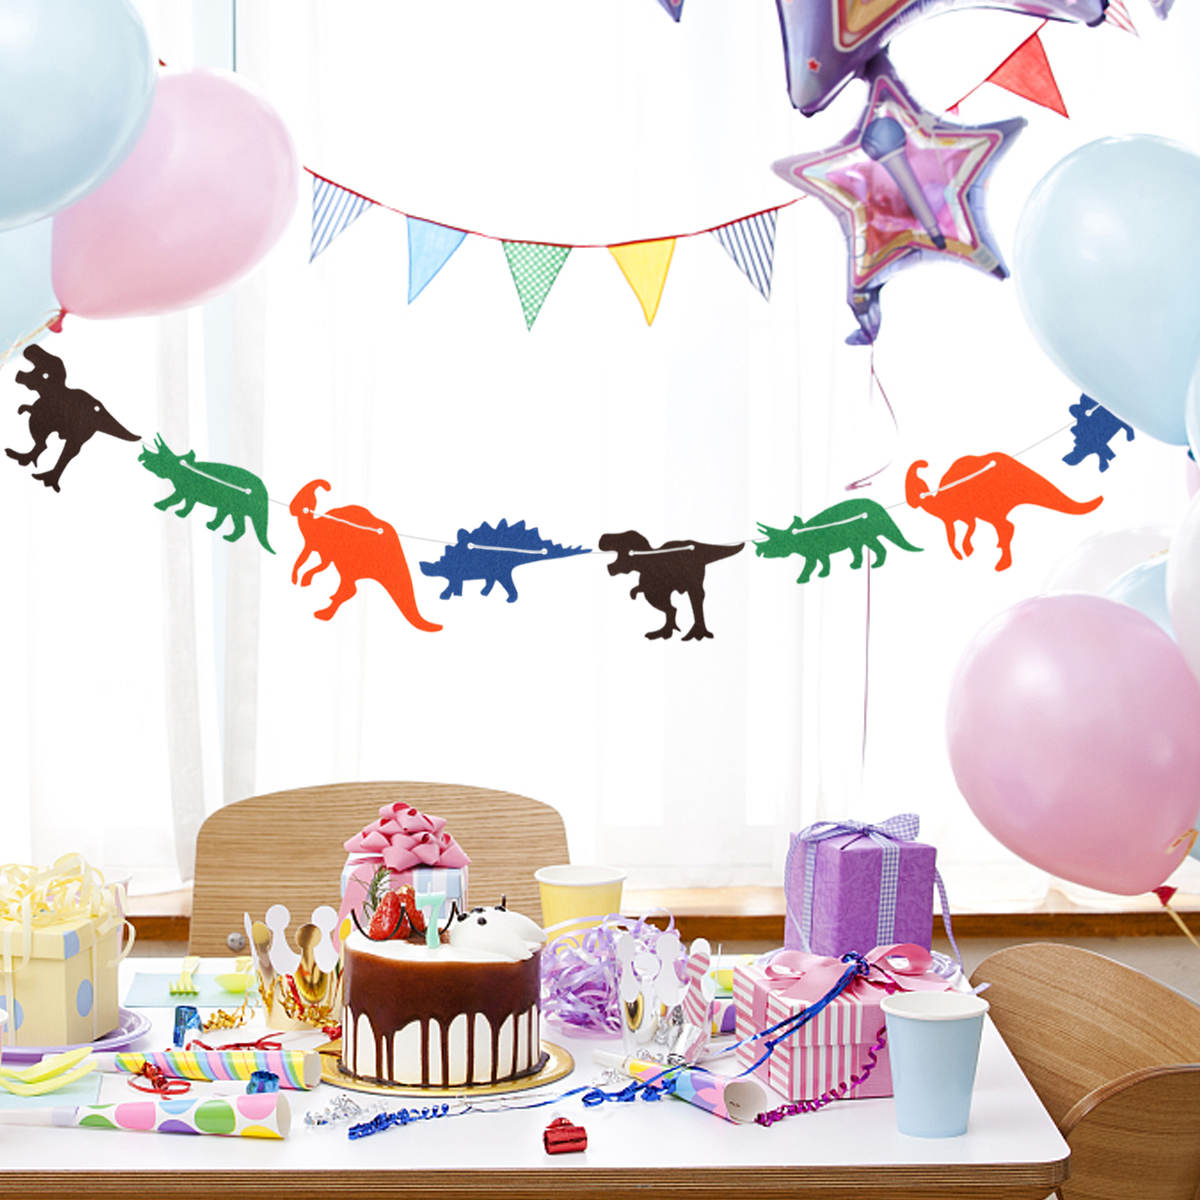 3M Hanging Banner Cute Non Woven Dinosaur Flag Creative Garland Banner Birthday Party Supplies Children Bedroom Decoration in Banners Streamers Confetti from Home Garden